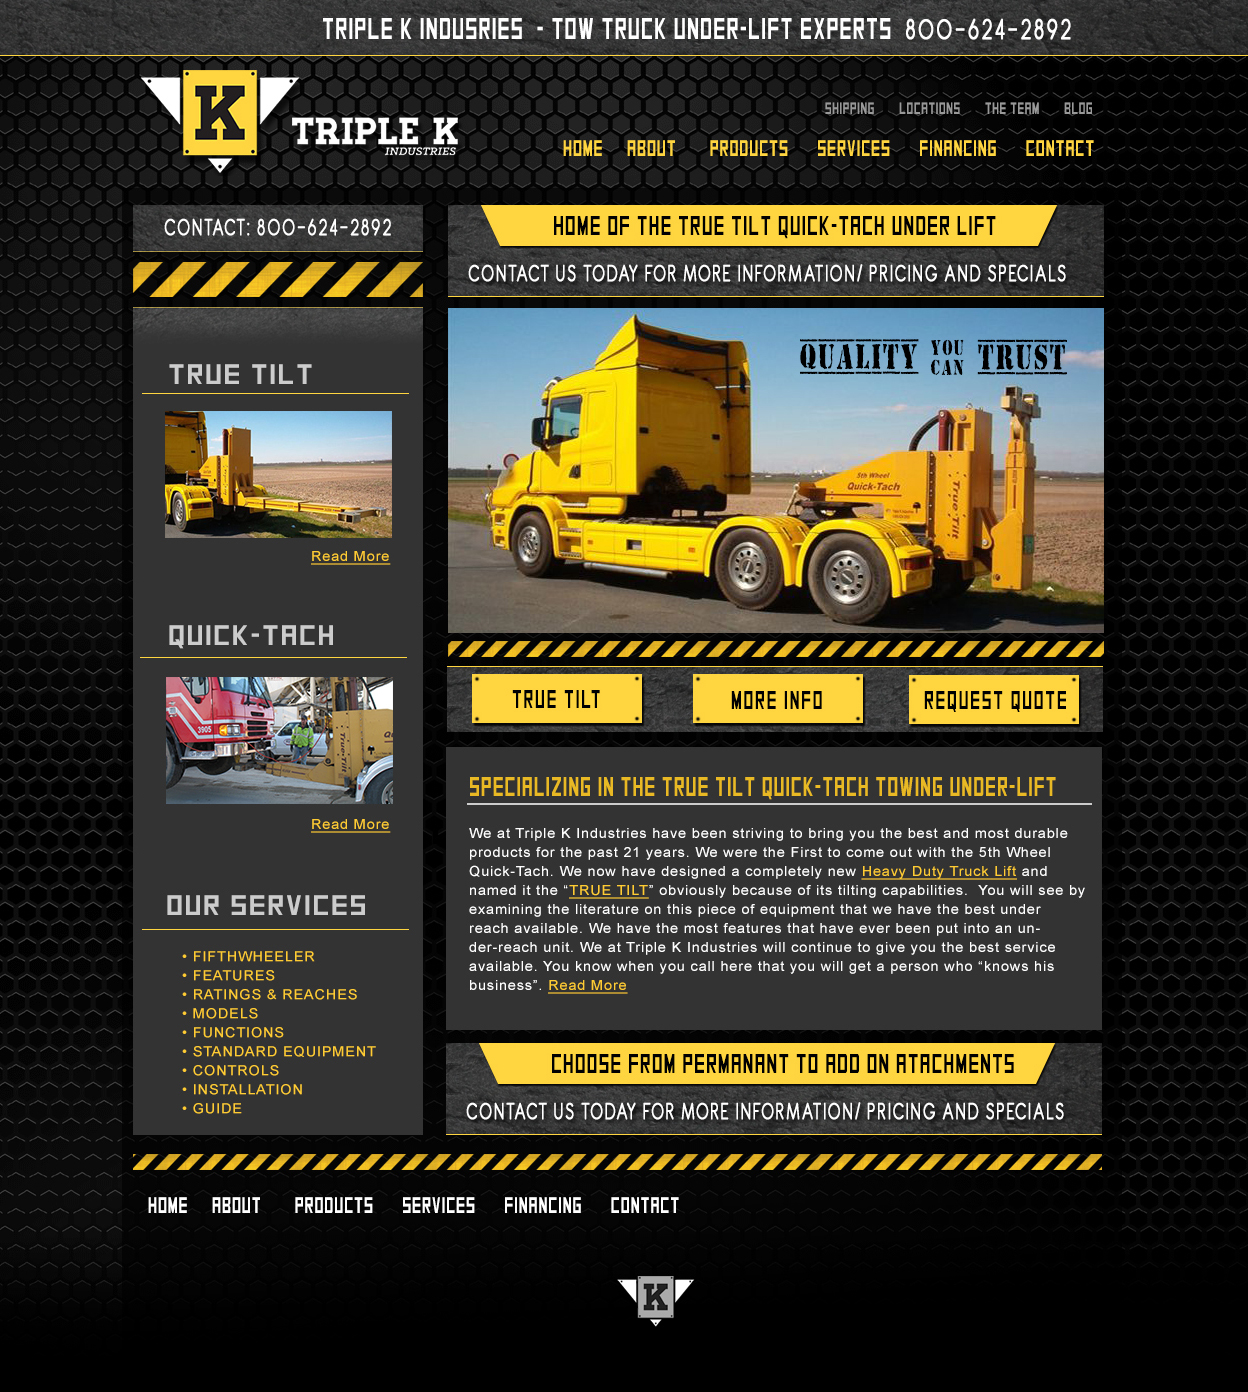 Triple K Industries Web Design and Graphic Design Project